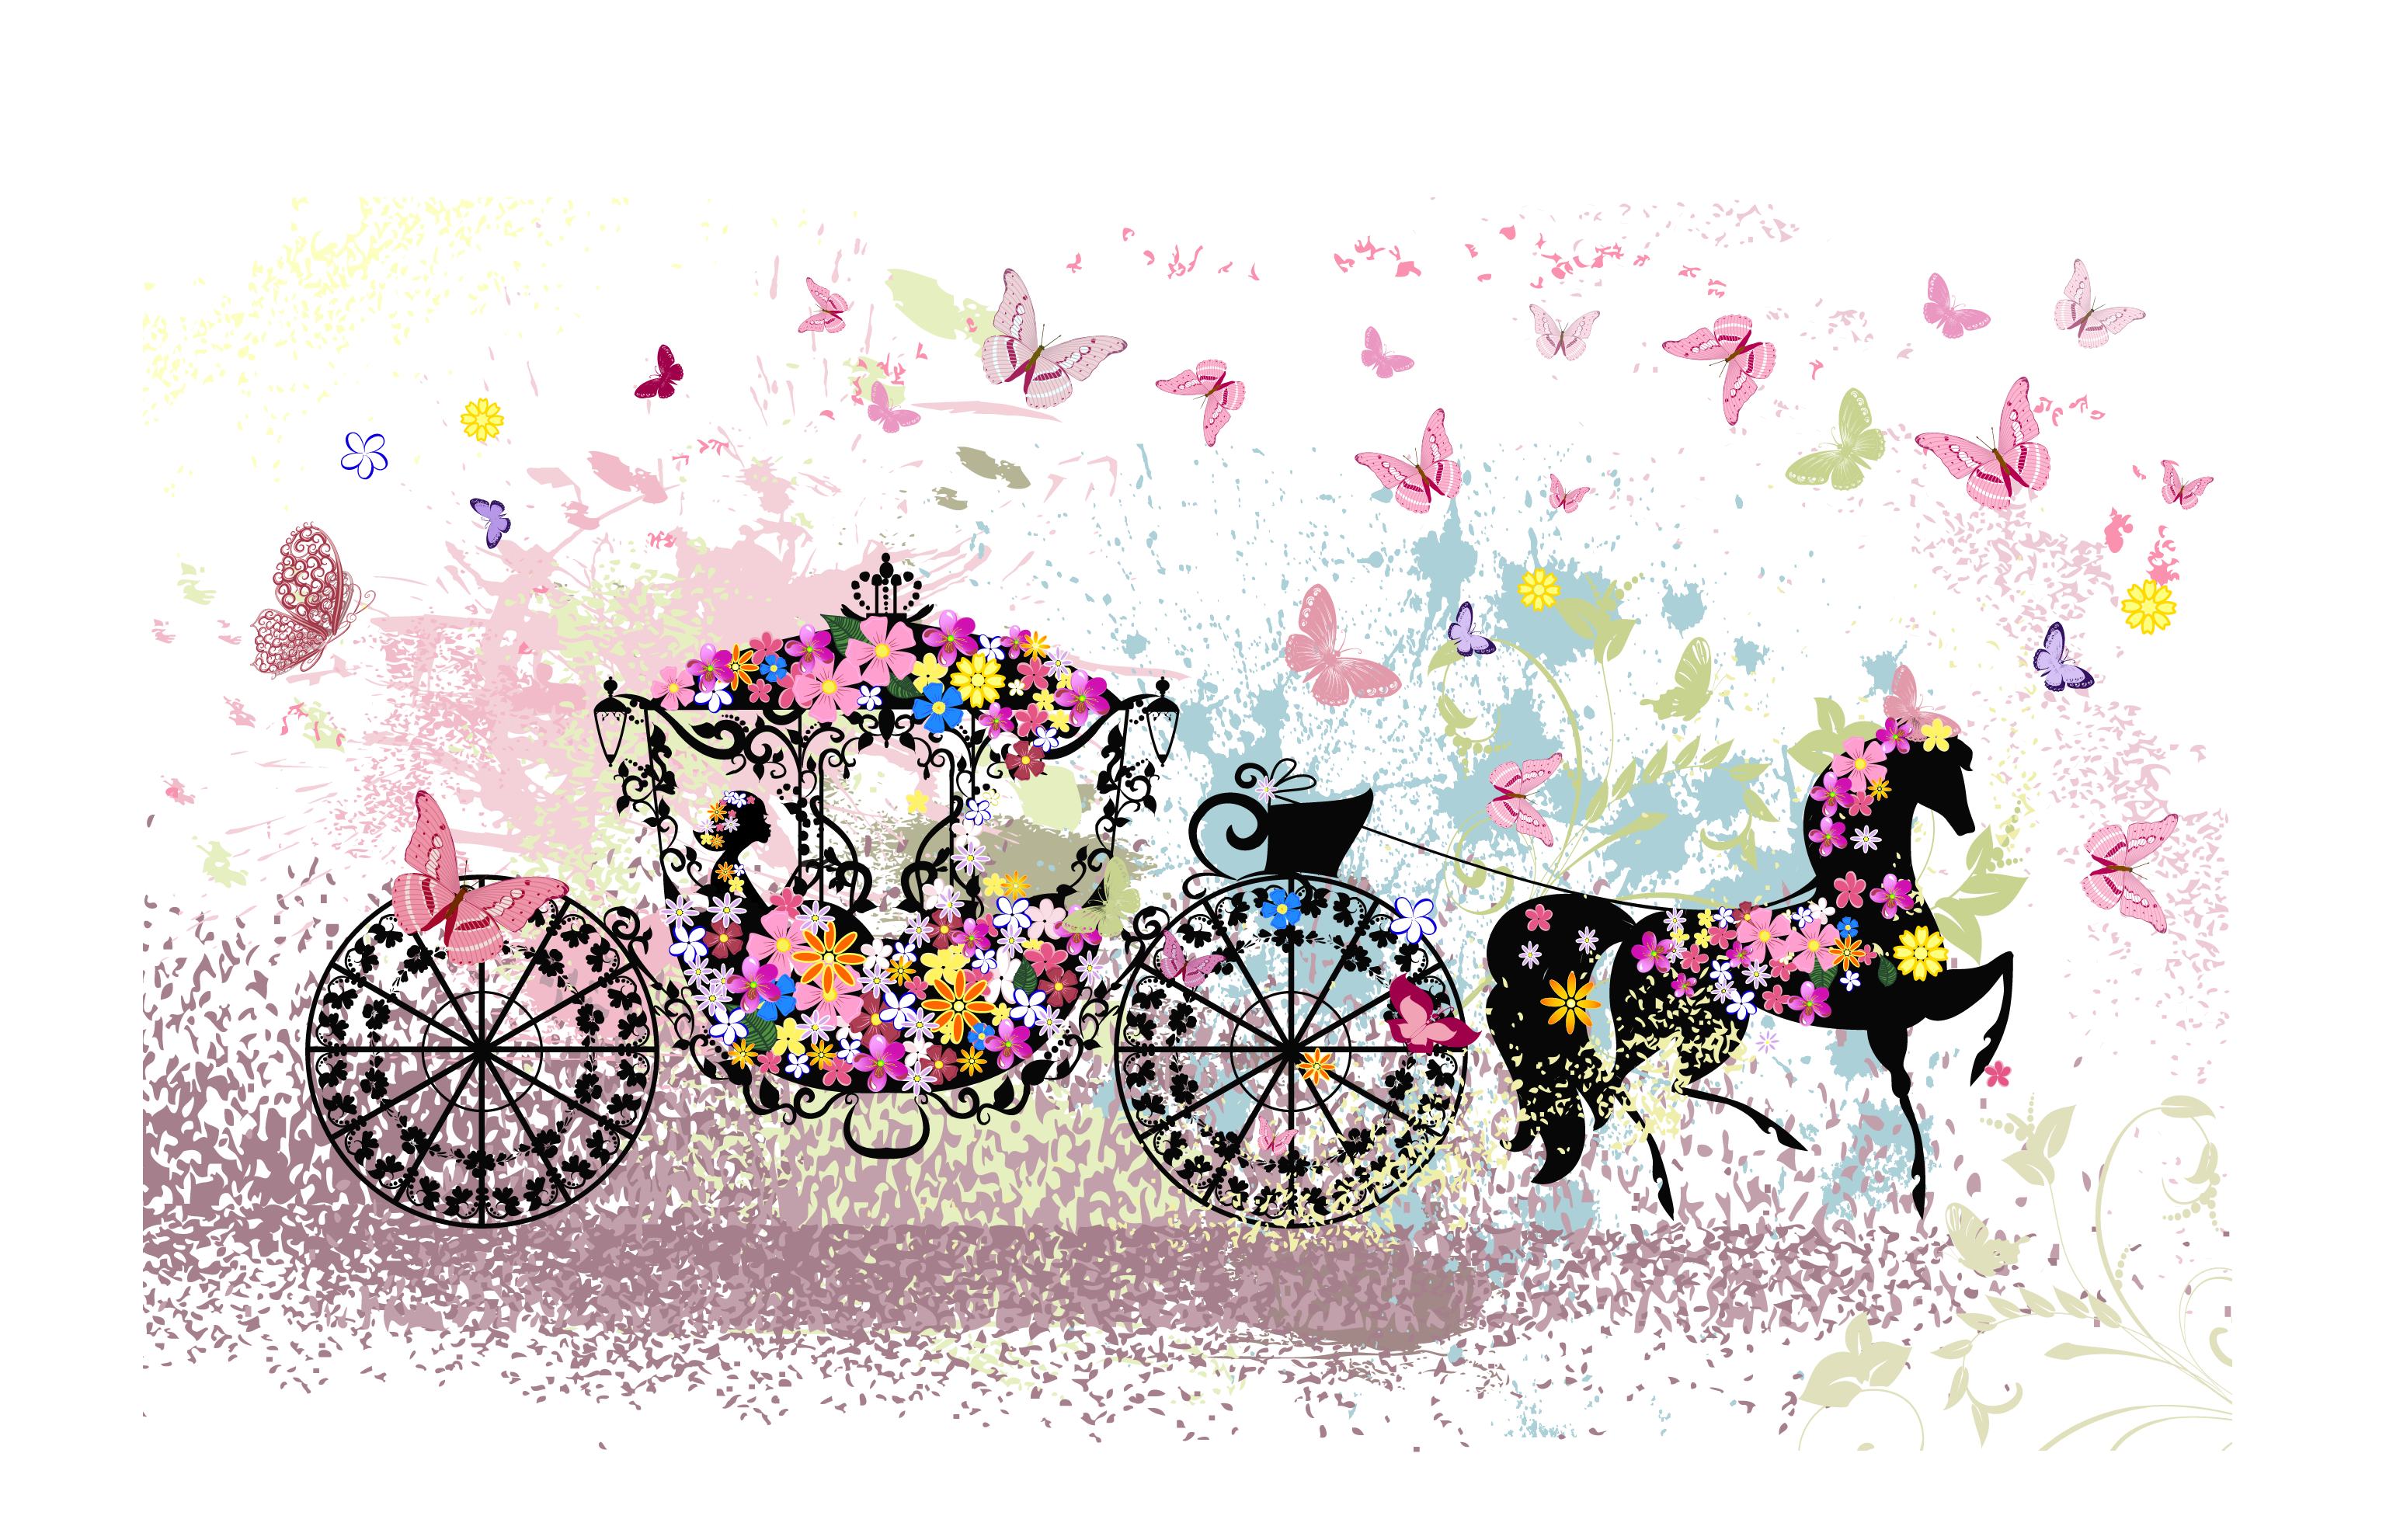 Cart drawing cinderella. Carriage pink cartoon fantasy